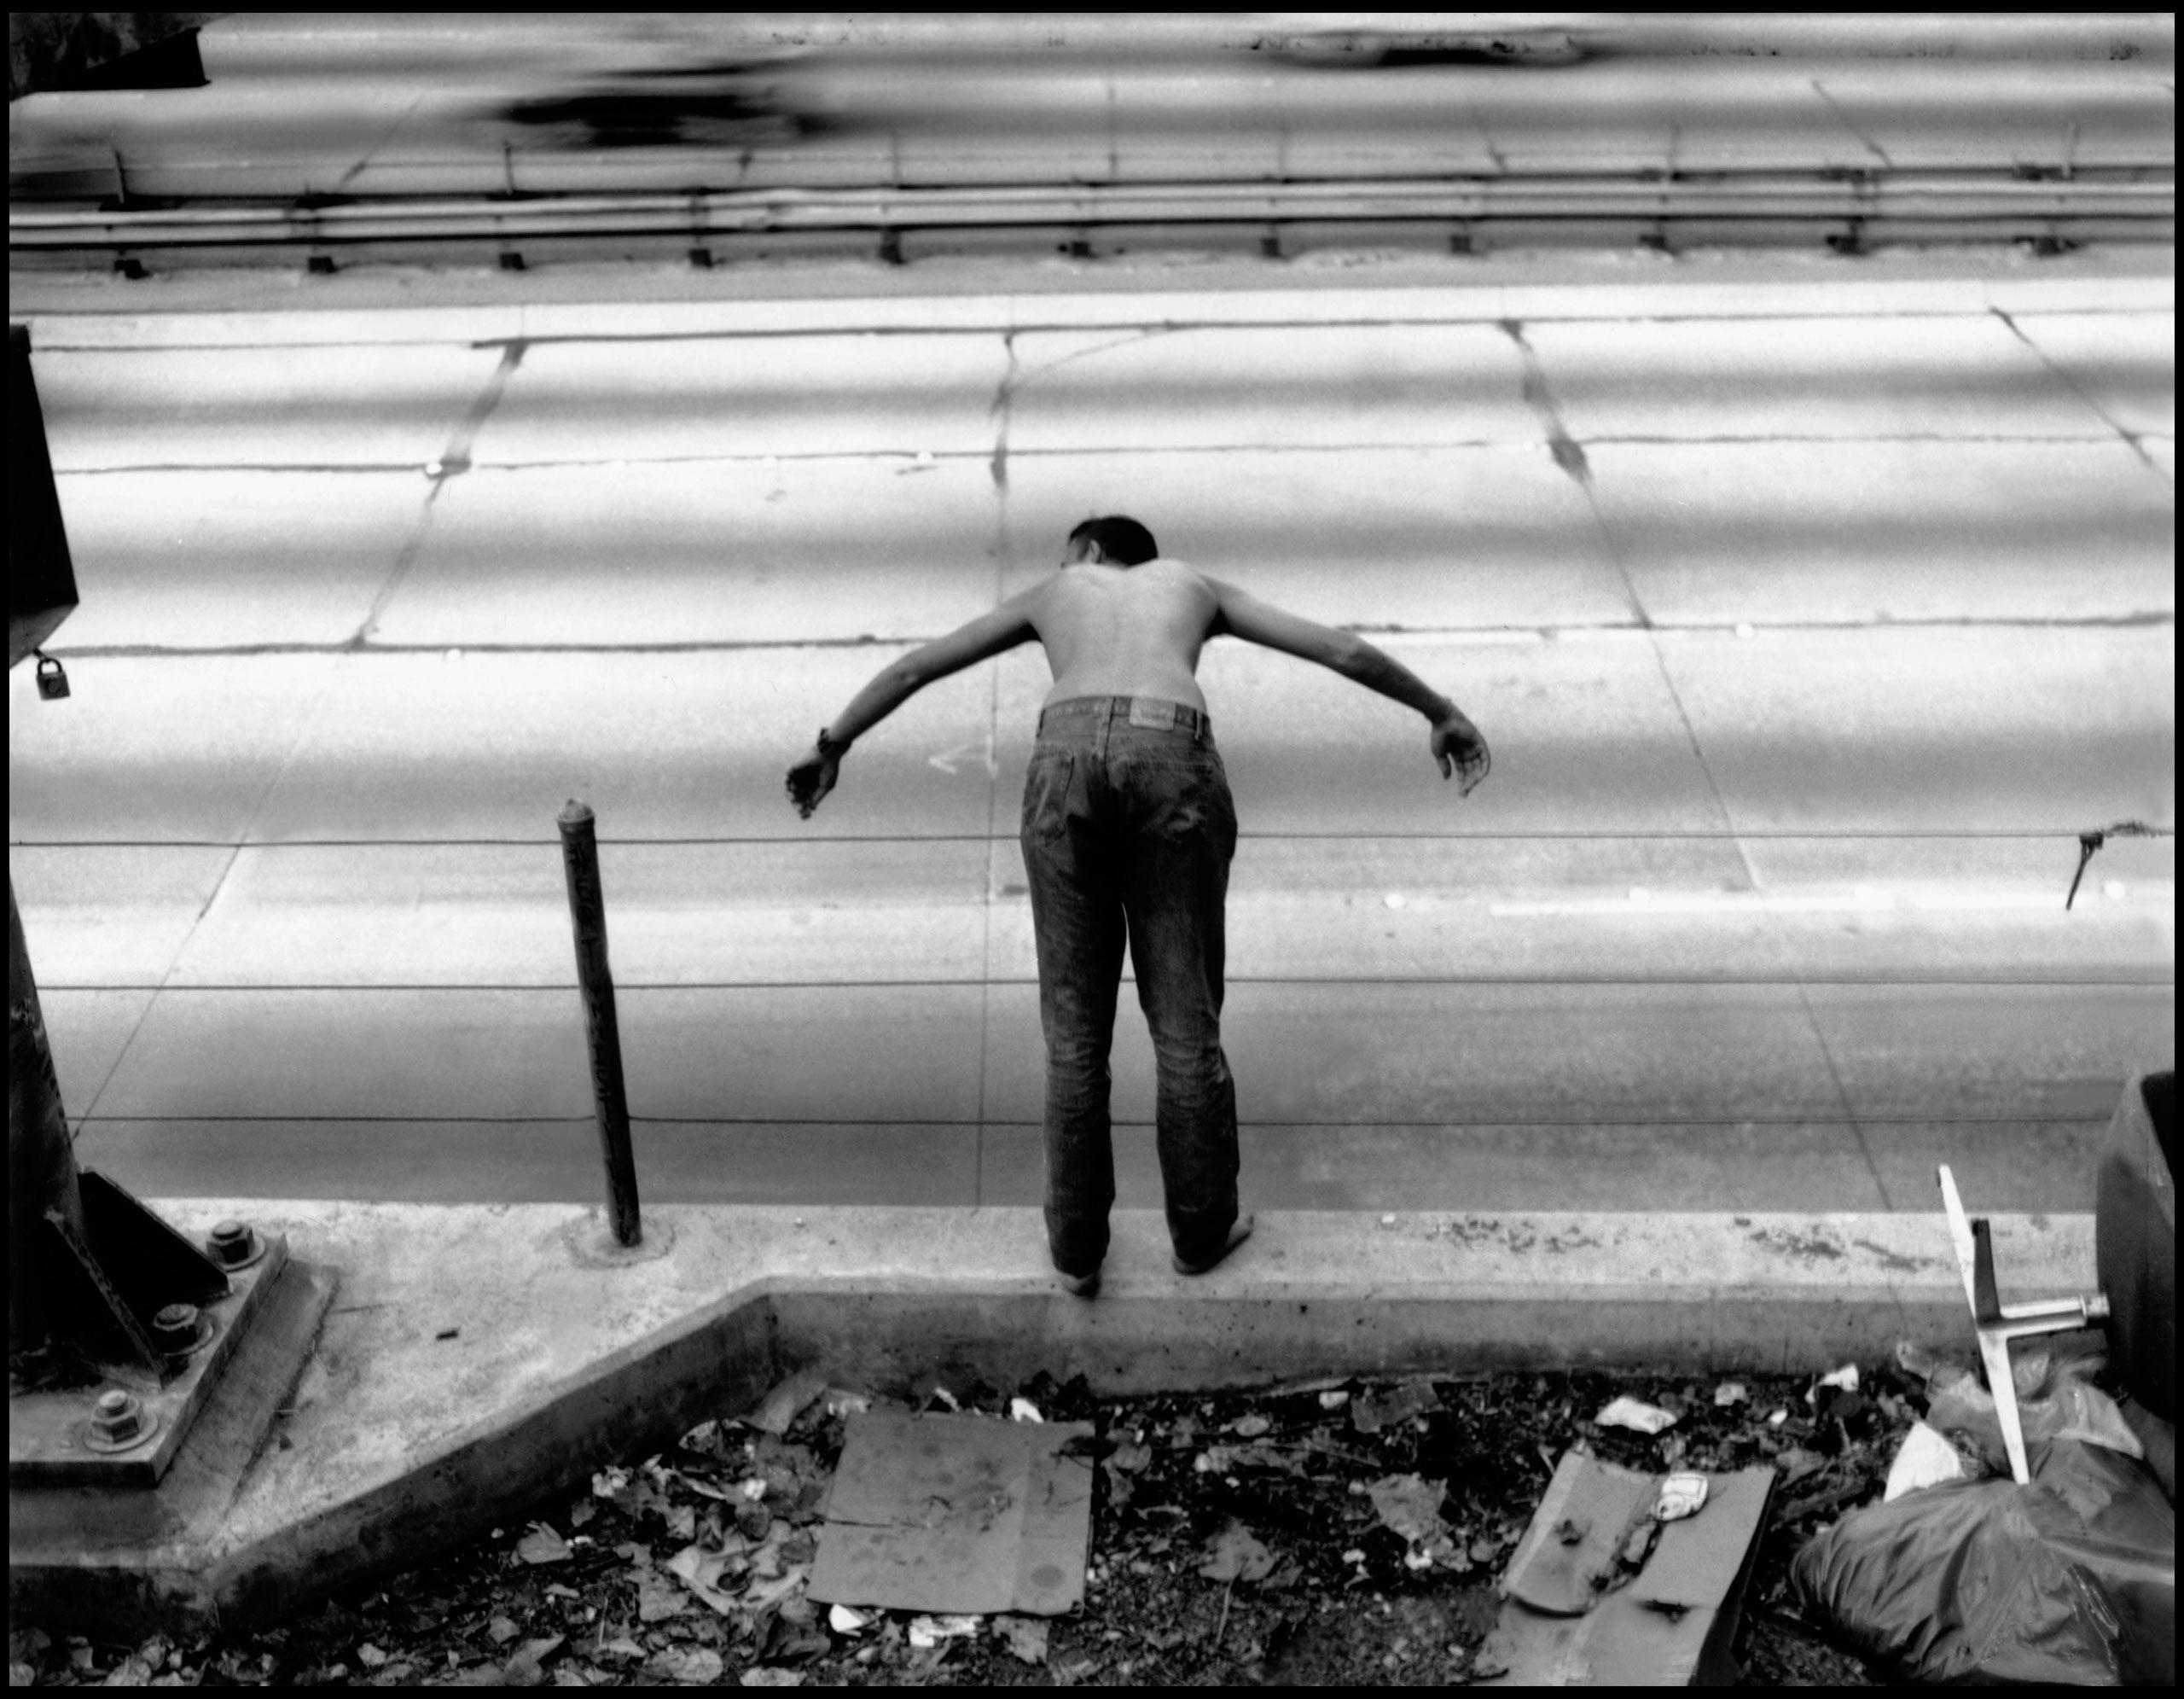 """Untitled, 1995.""""This photograph is part of a larger project called Raised by Wolves, which was a ten-year multimedia project photographing homeless street kids in San Francisco and Hollywood.                               [The man] was playing chicken, which is how far he could lean over the railing of the freeway before he would fall off. Right behind him was an area underneath a freeway overpass where a bunch of kids were sleeping""""—Jim Goldberg"""